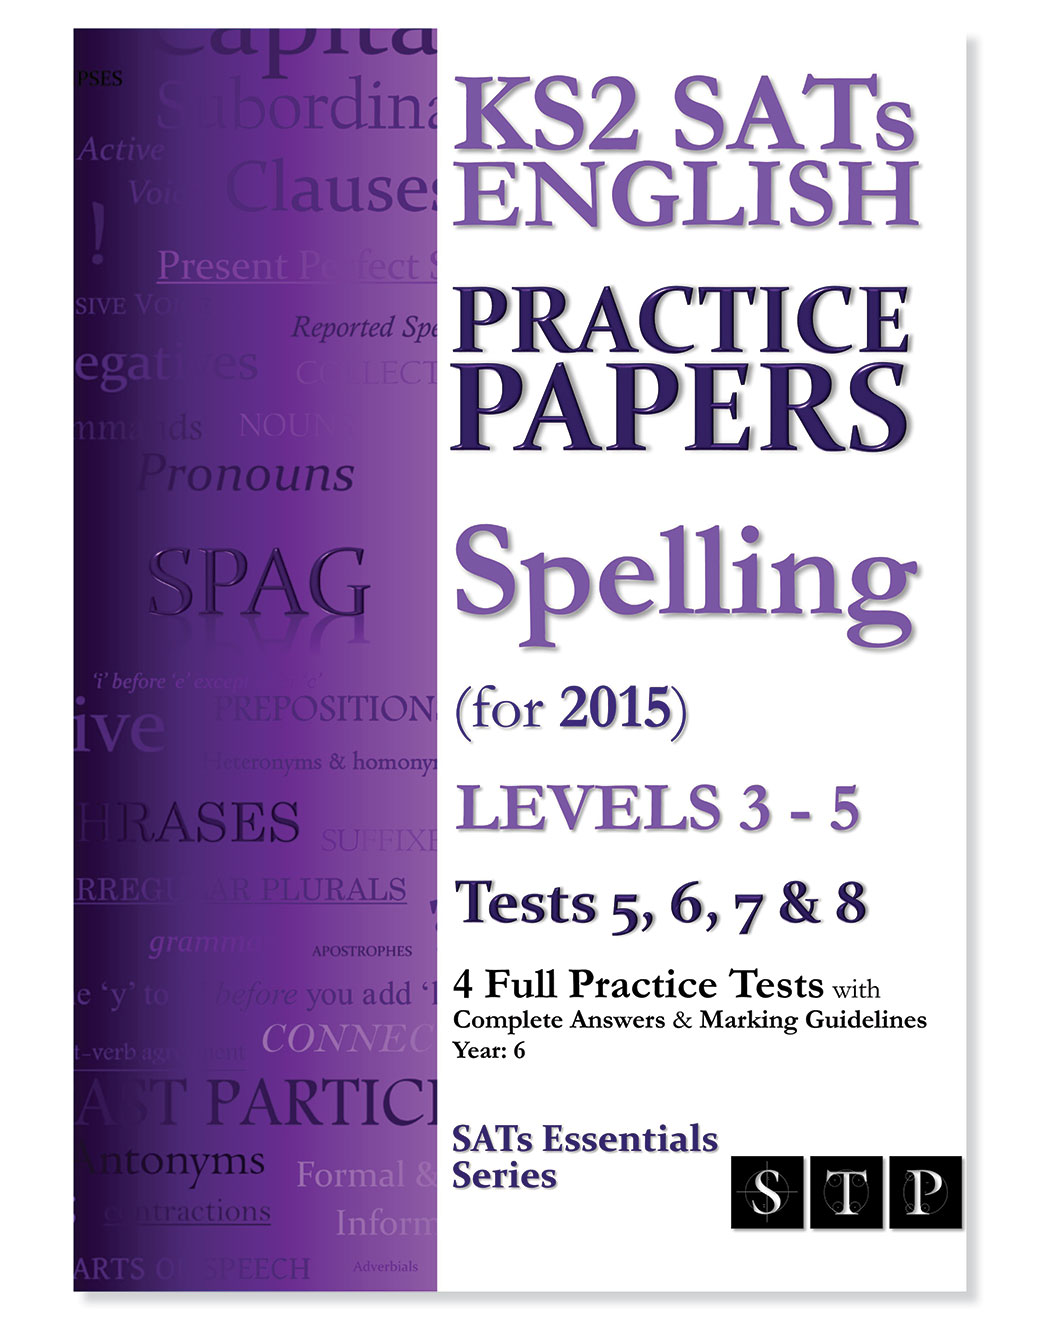 STP Books KS2 SATs English Practice Papers: Spelling (for 2015) Levels 3 - 5: Tests 5, 6, 7 & 8 (Year 6)